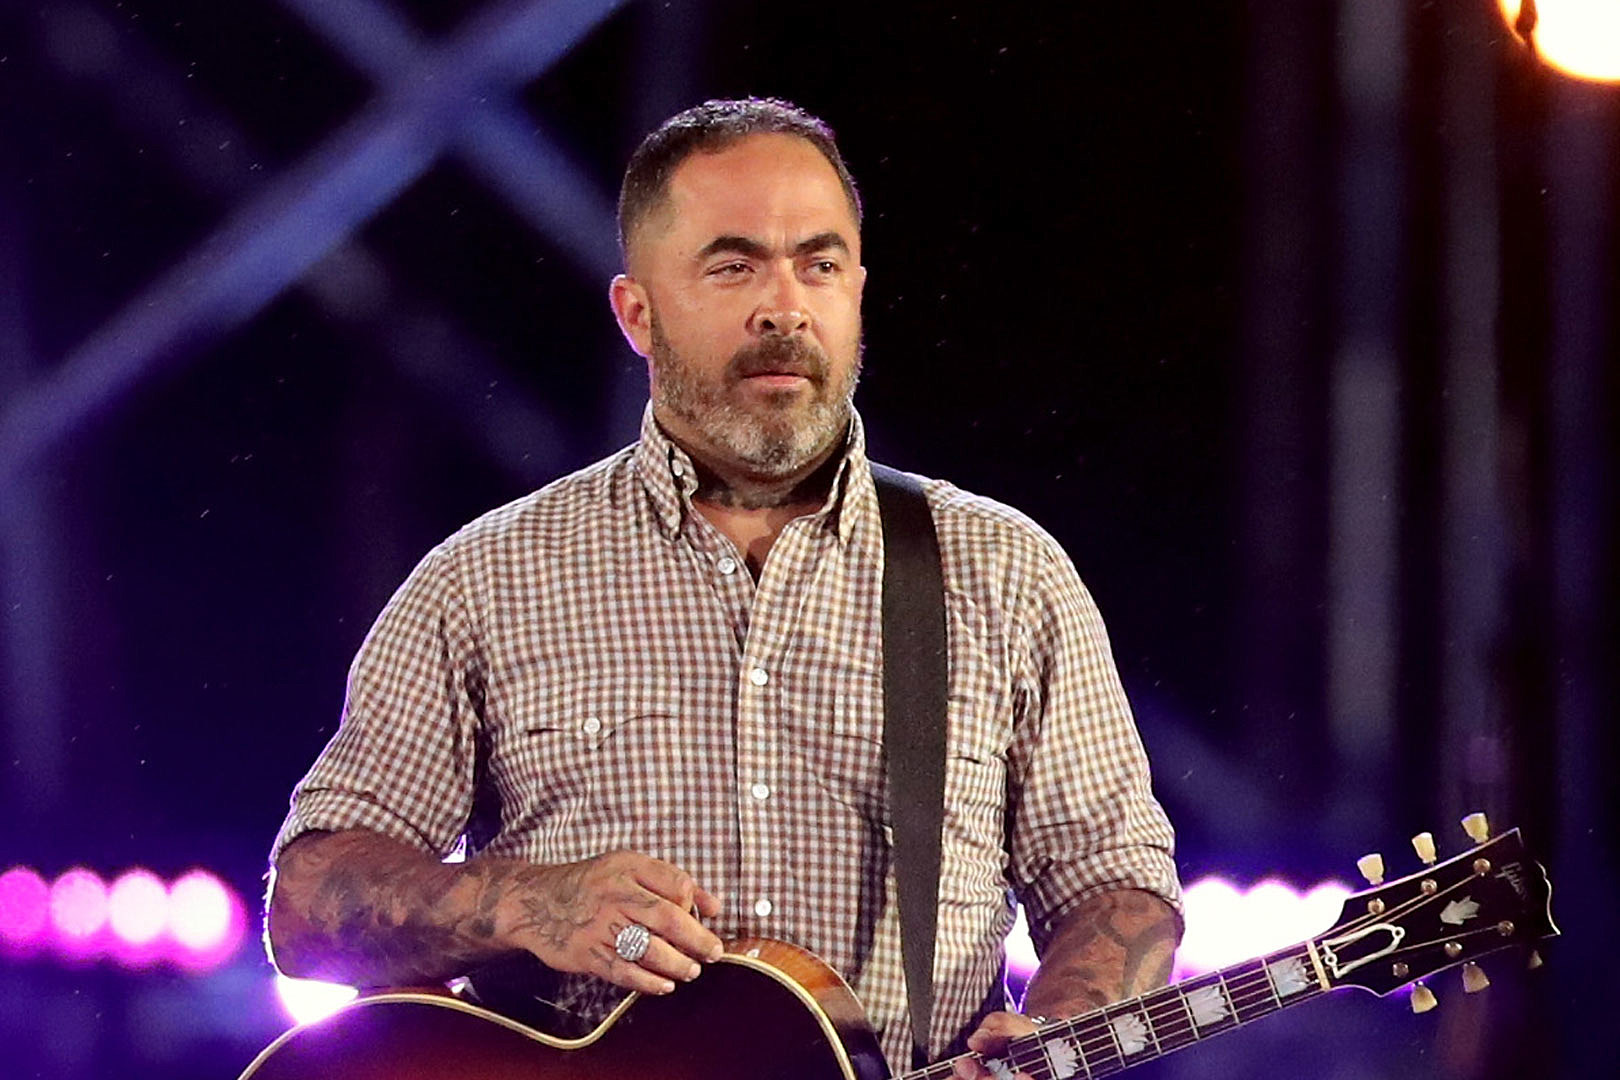 Aaron Lewis Books 2021 U.S. Tour With Stateliners Backing Band